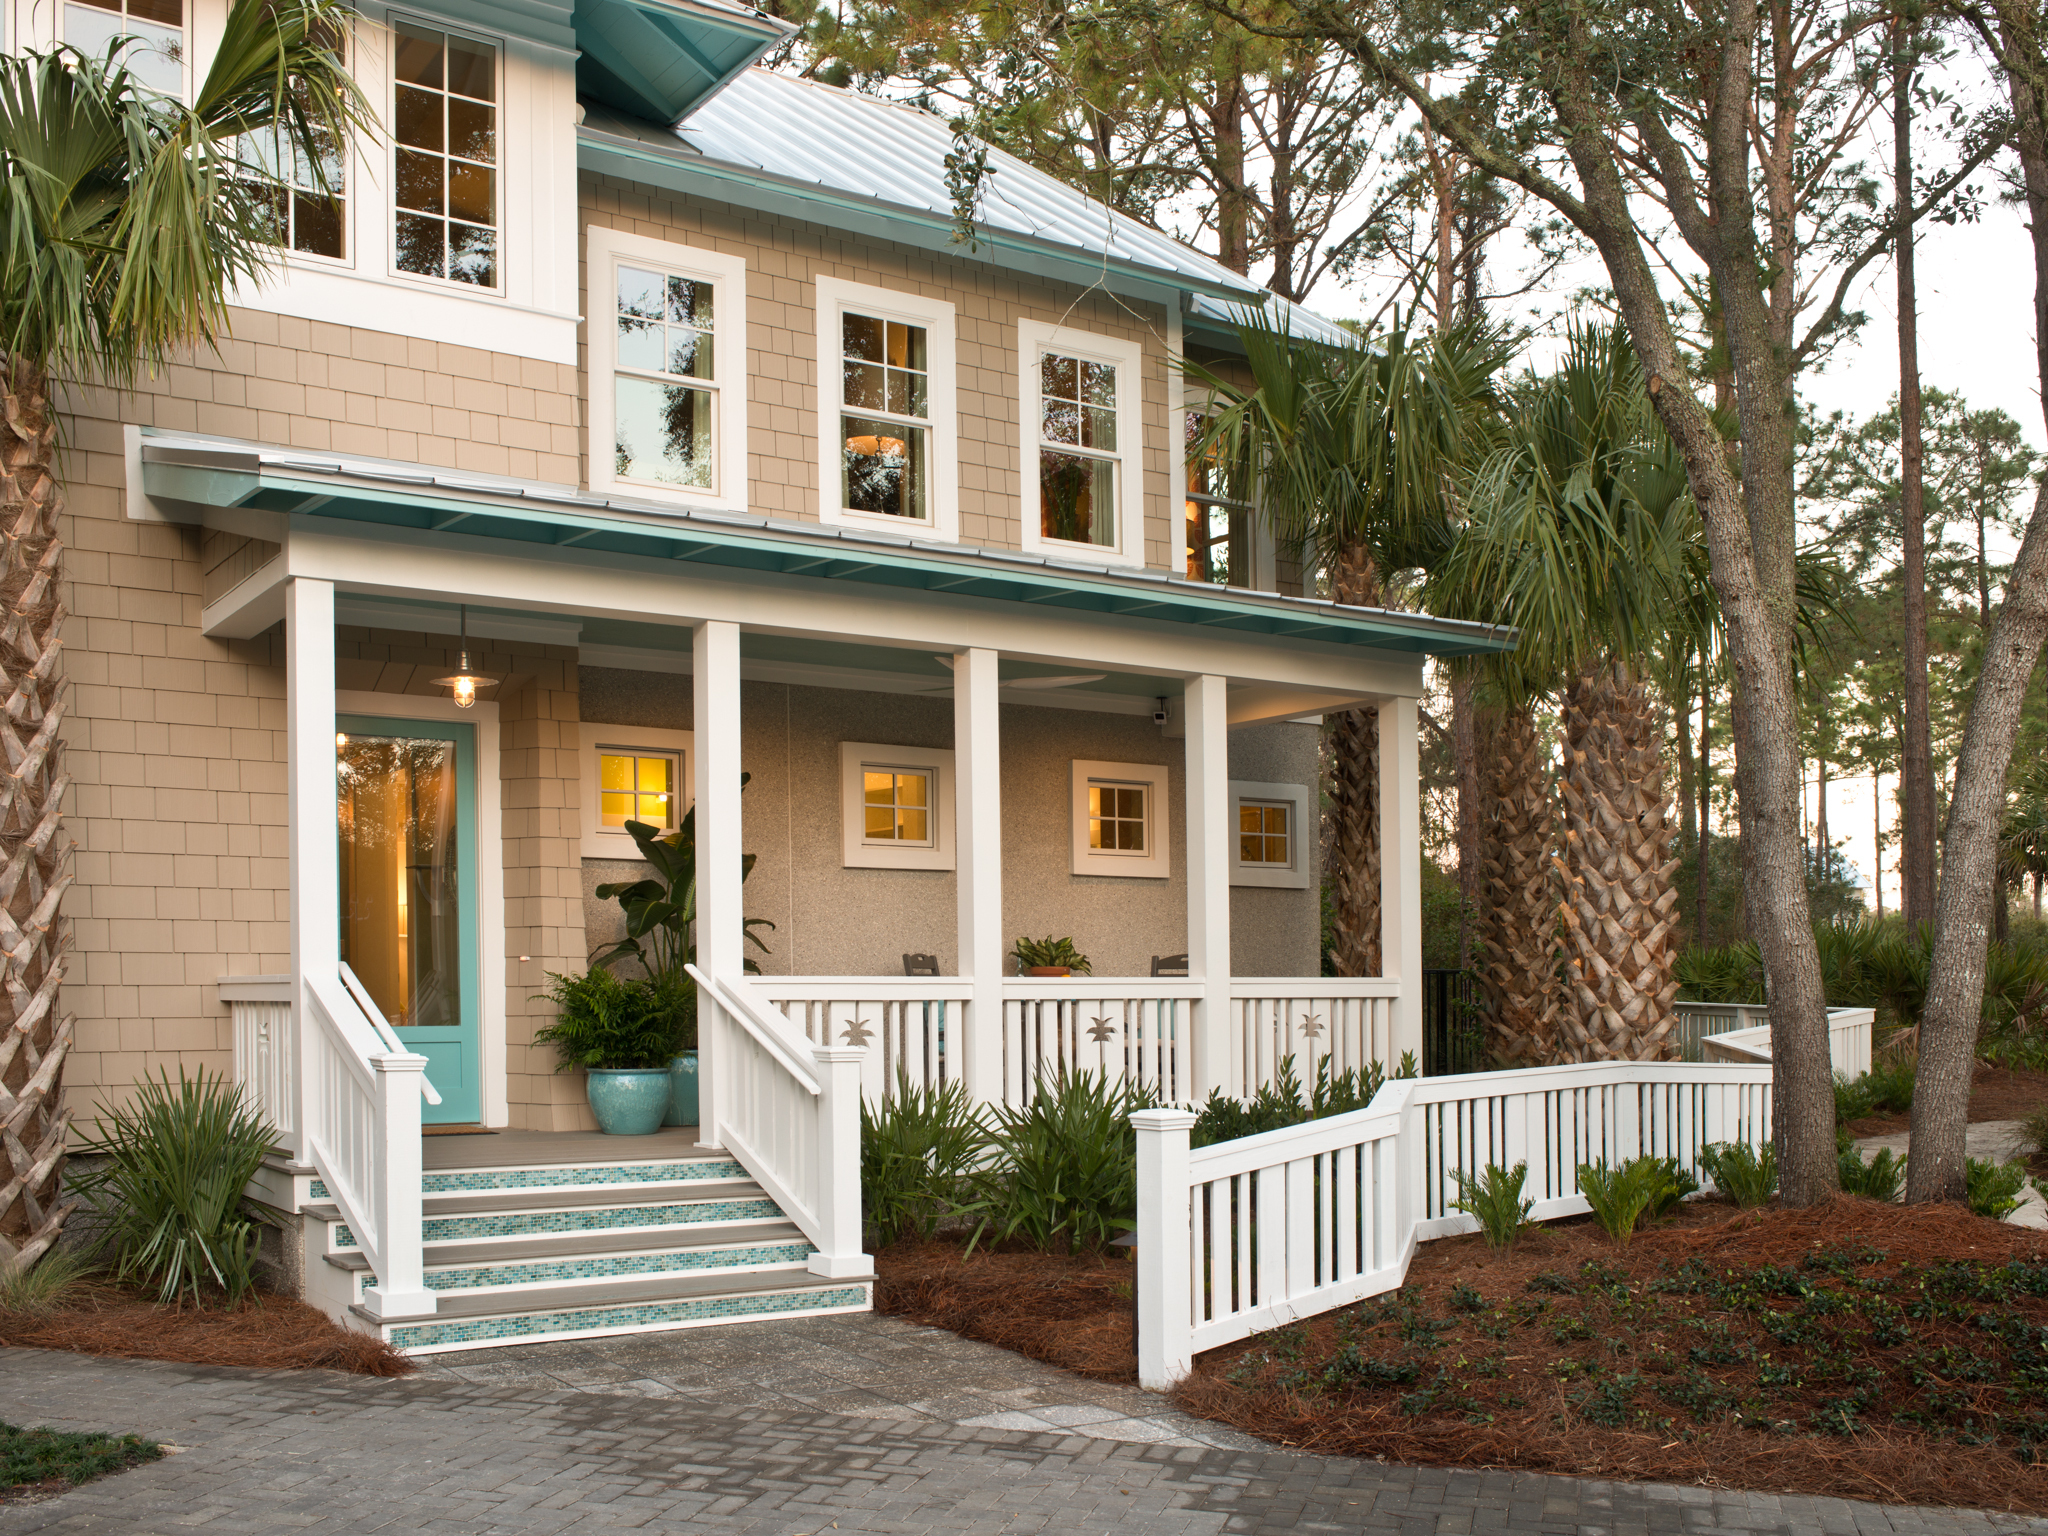 the design of hgtv smart home is inspired by vacation homes constructed - Hgtv Smart Home Sweepstakes